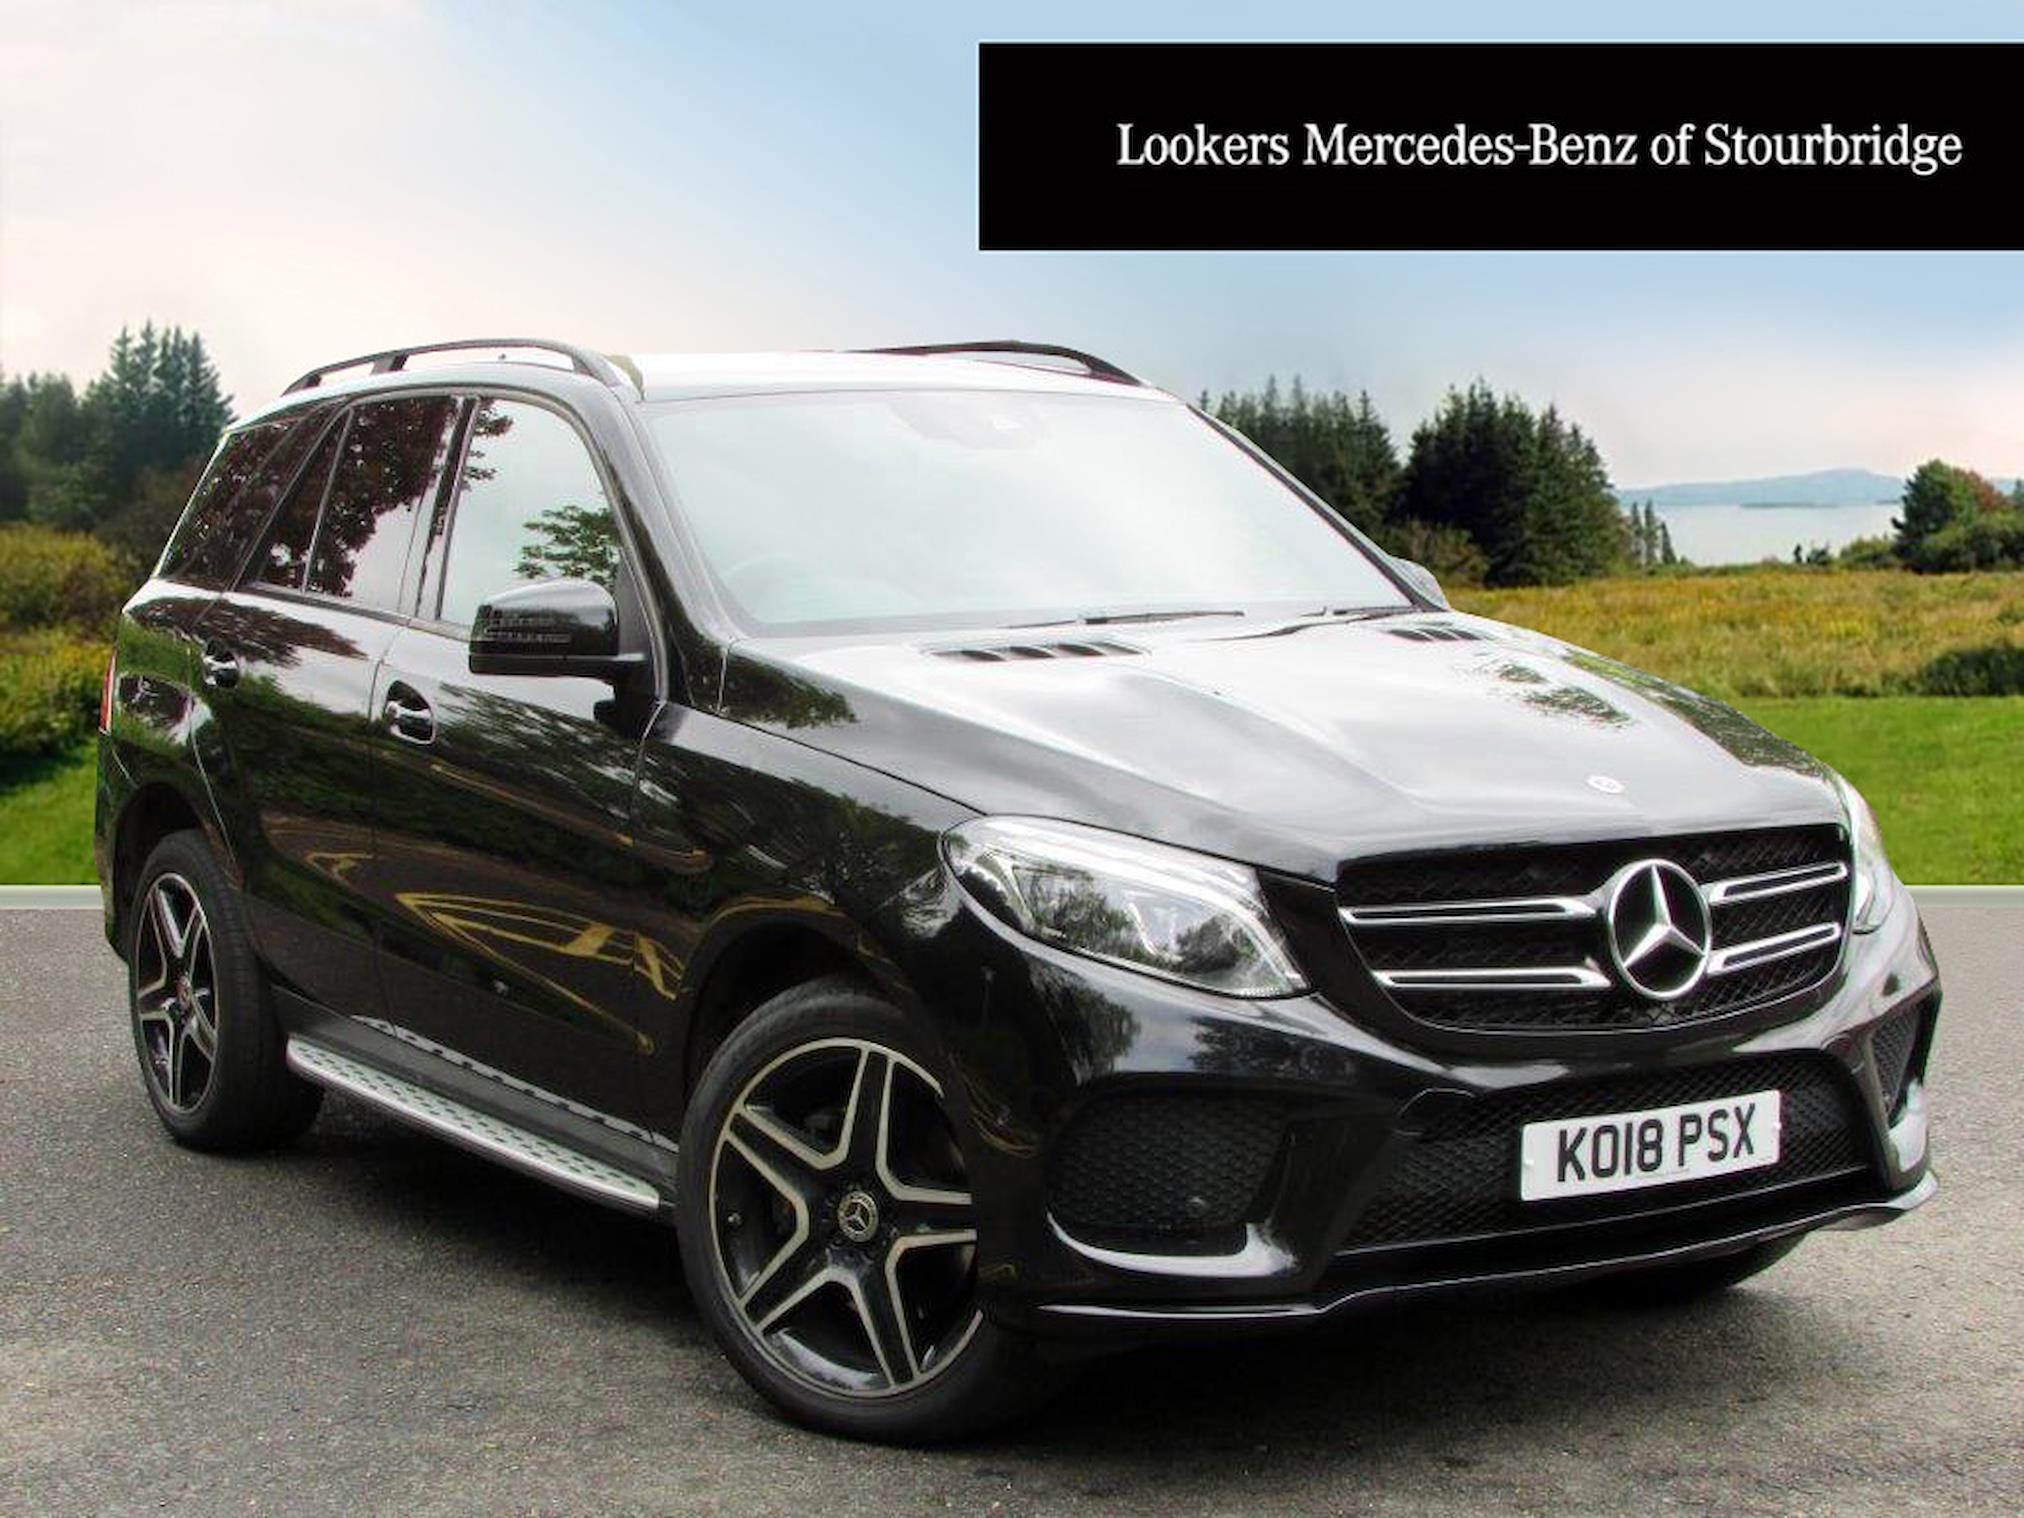 Used GLE MERCEDES-BENZ Gle 350D 4Matic Amg Night Edition 5Dr